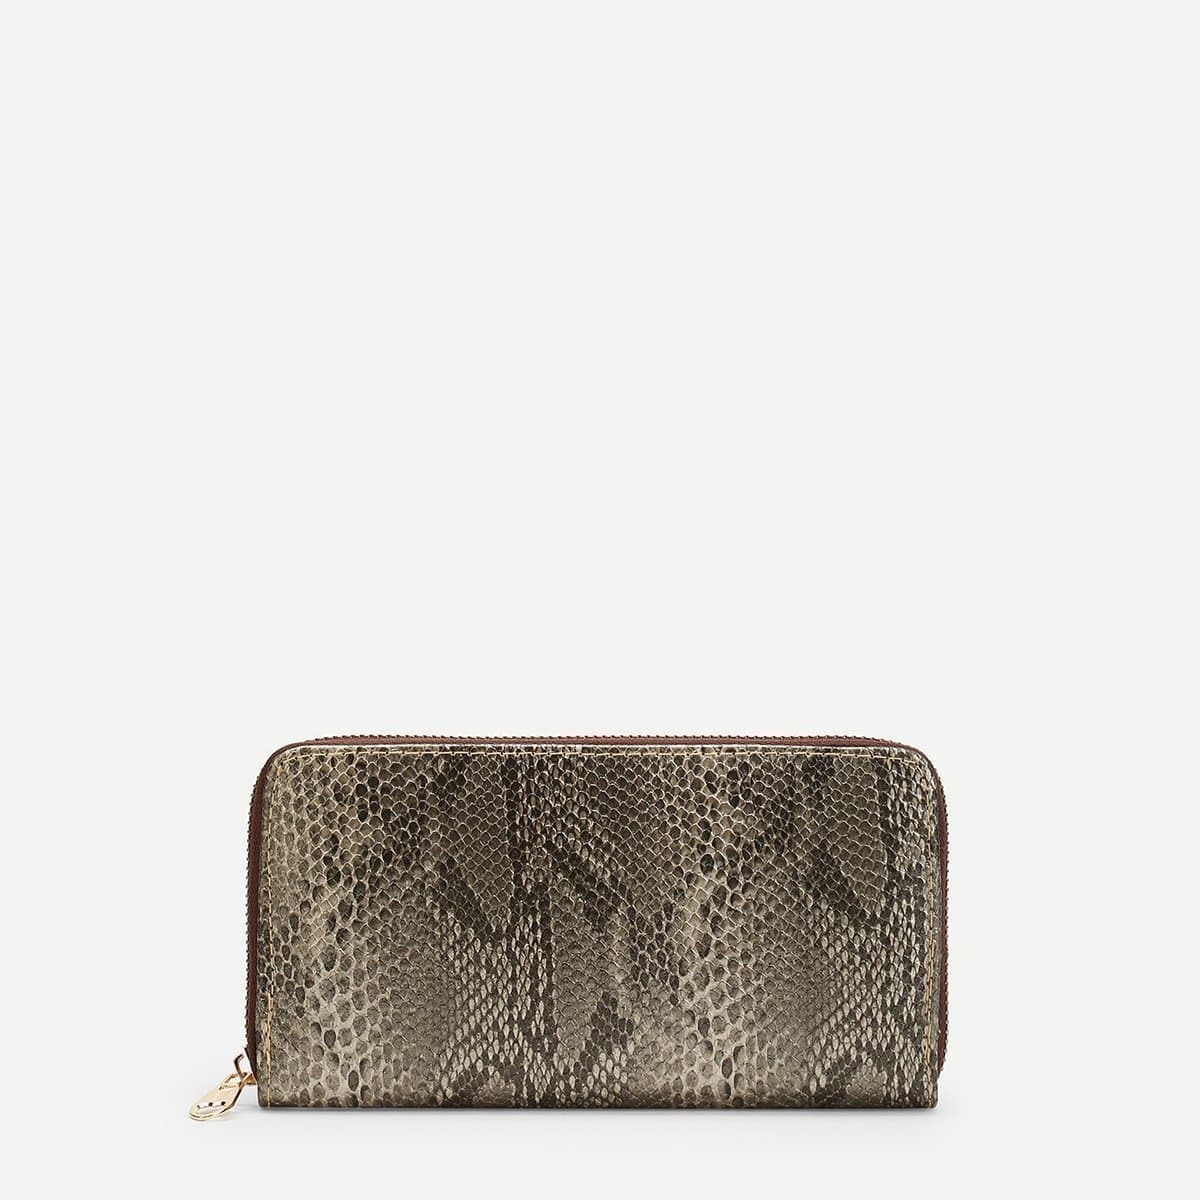 - Snakeskin Pattern Purse